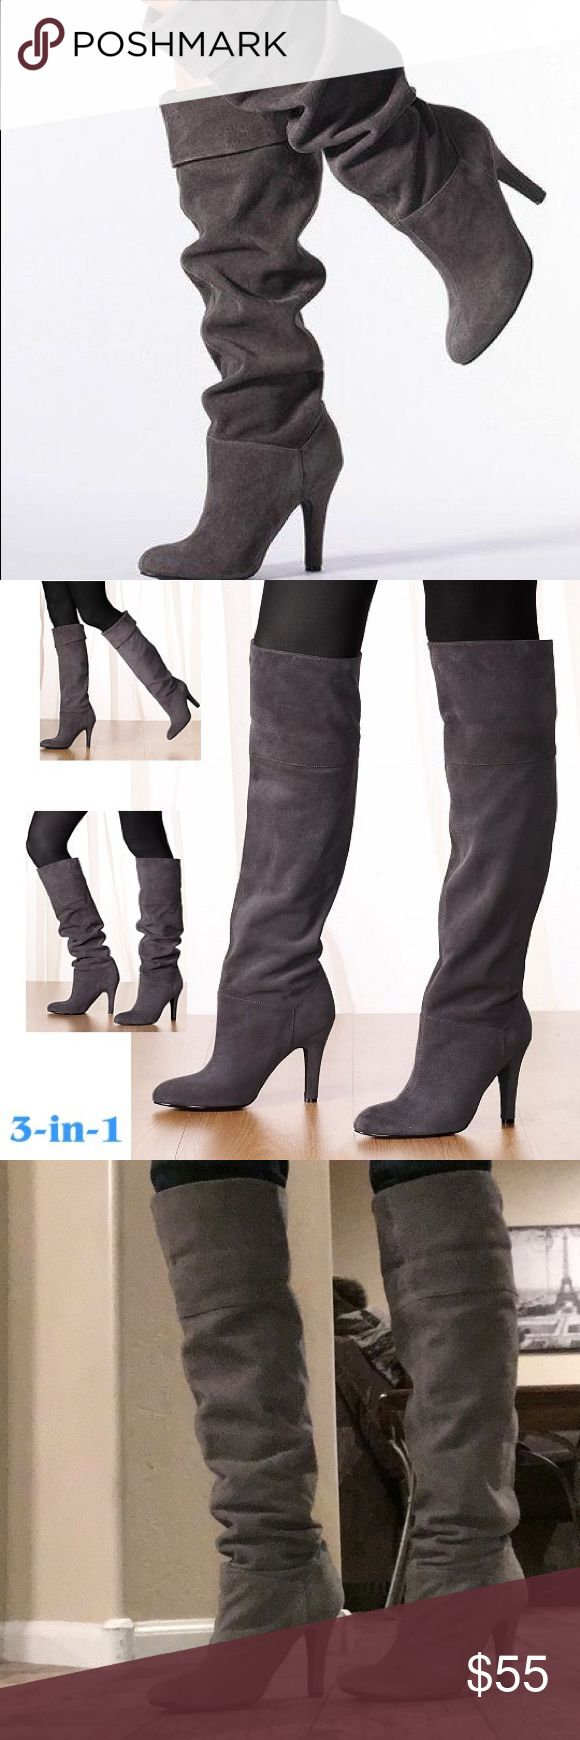 🎉HOST PICK FASHION ICON 🎉👑Colin Stuart Boots Gray sexy Suede over the knee boots by Colin Stuart. 3 different ways to wear these boots. Colin Stuart Shoes Over the Knee Boots